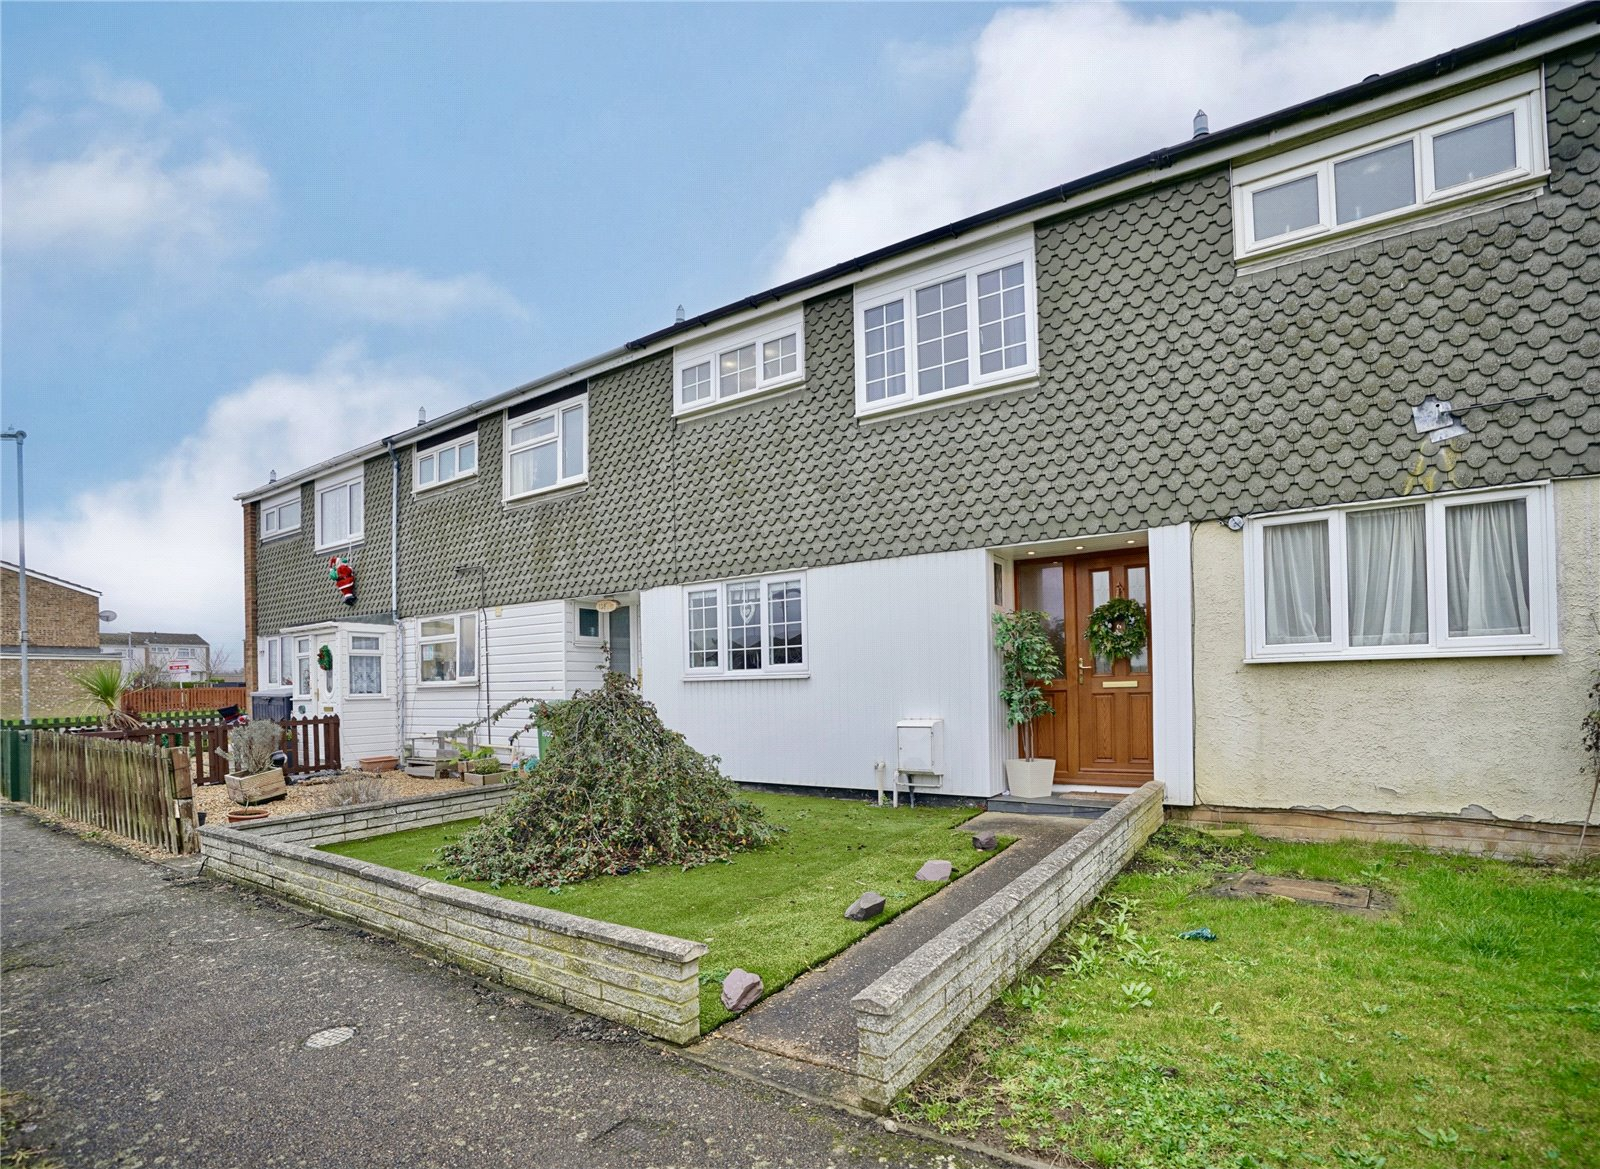 3 bed house for sale in Eynesbury, PE19 2PA, PE19